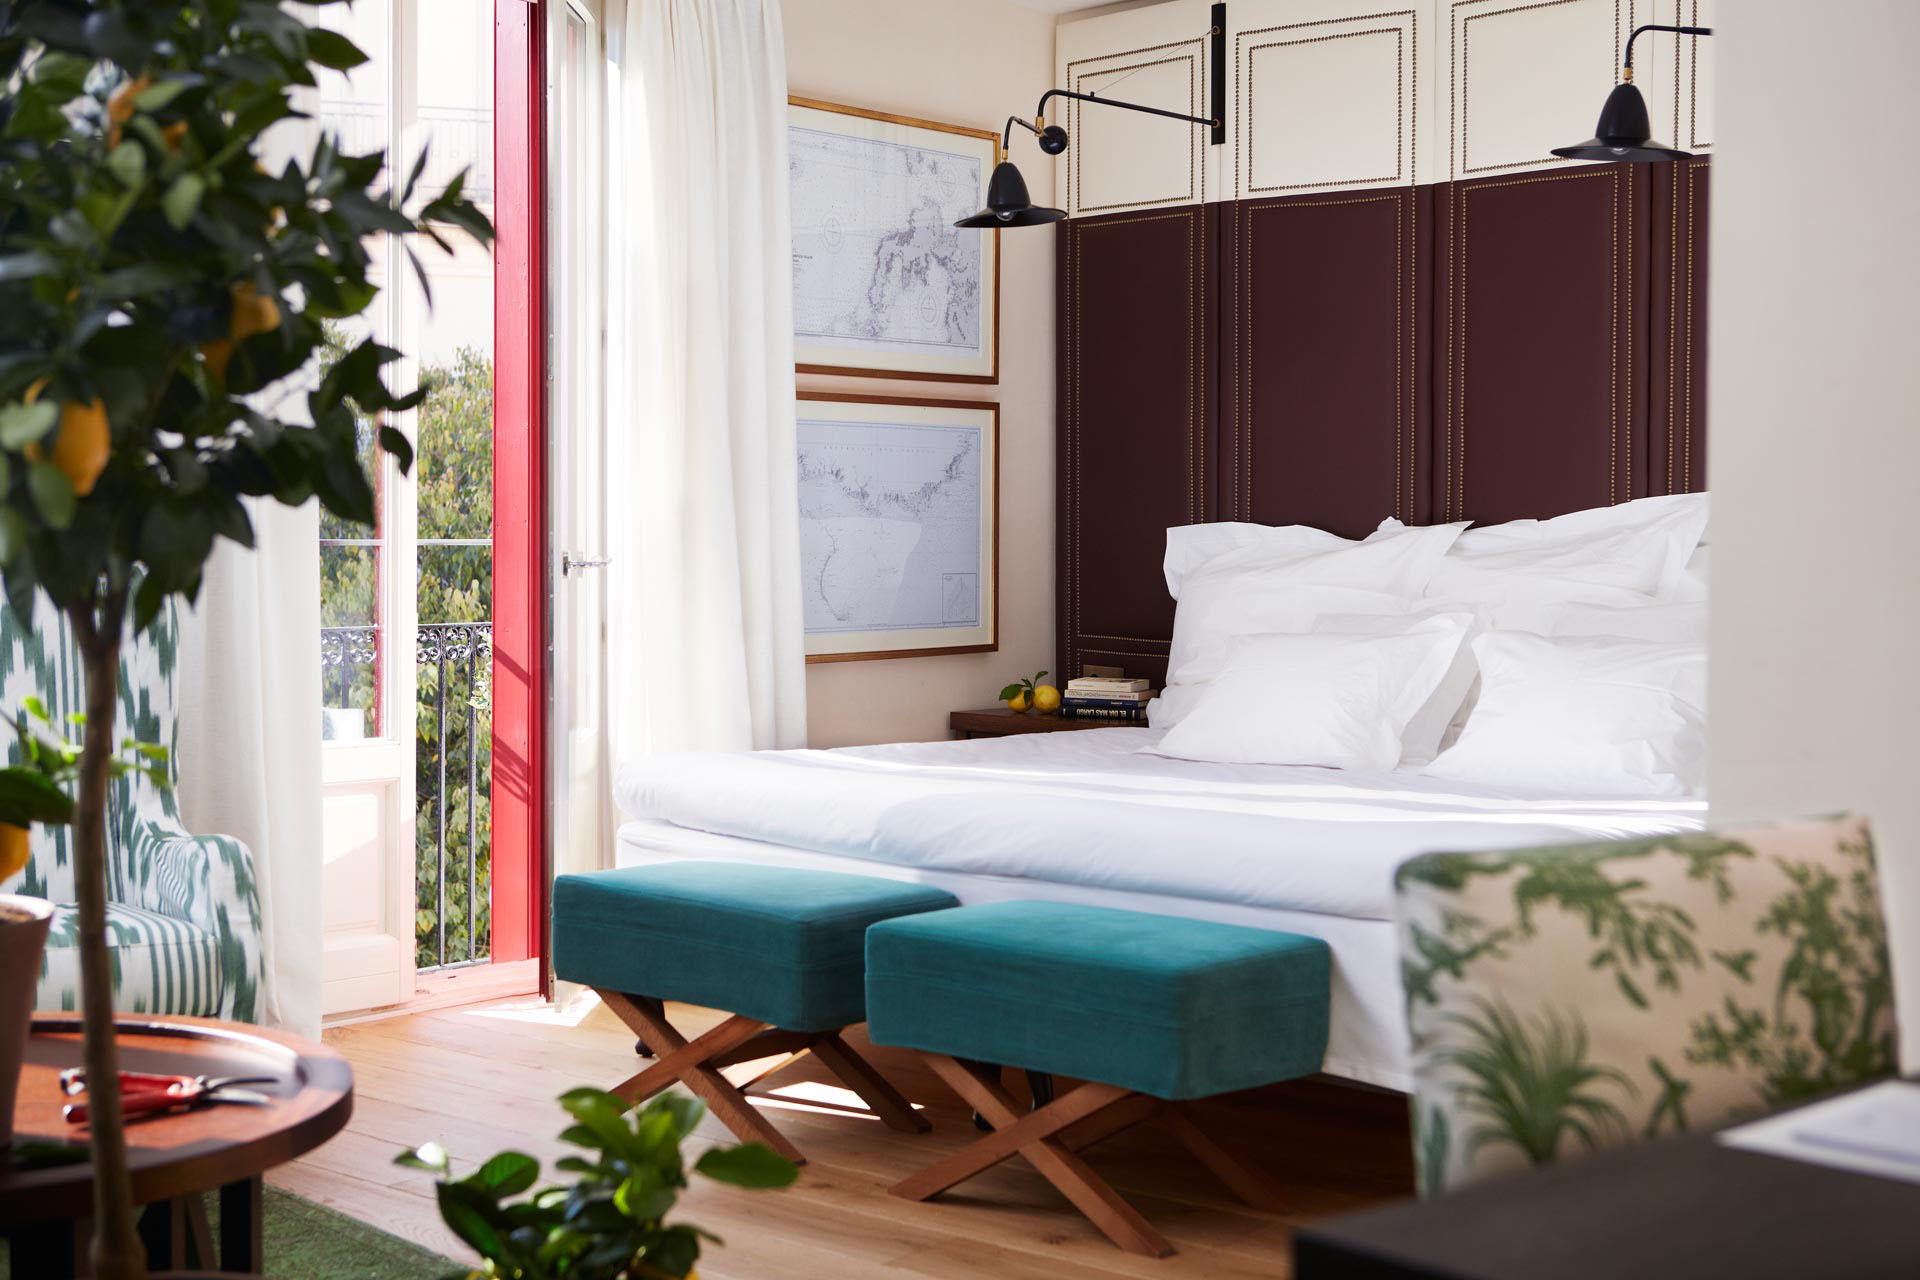 Palma Hotel Guest Room